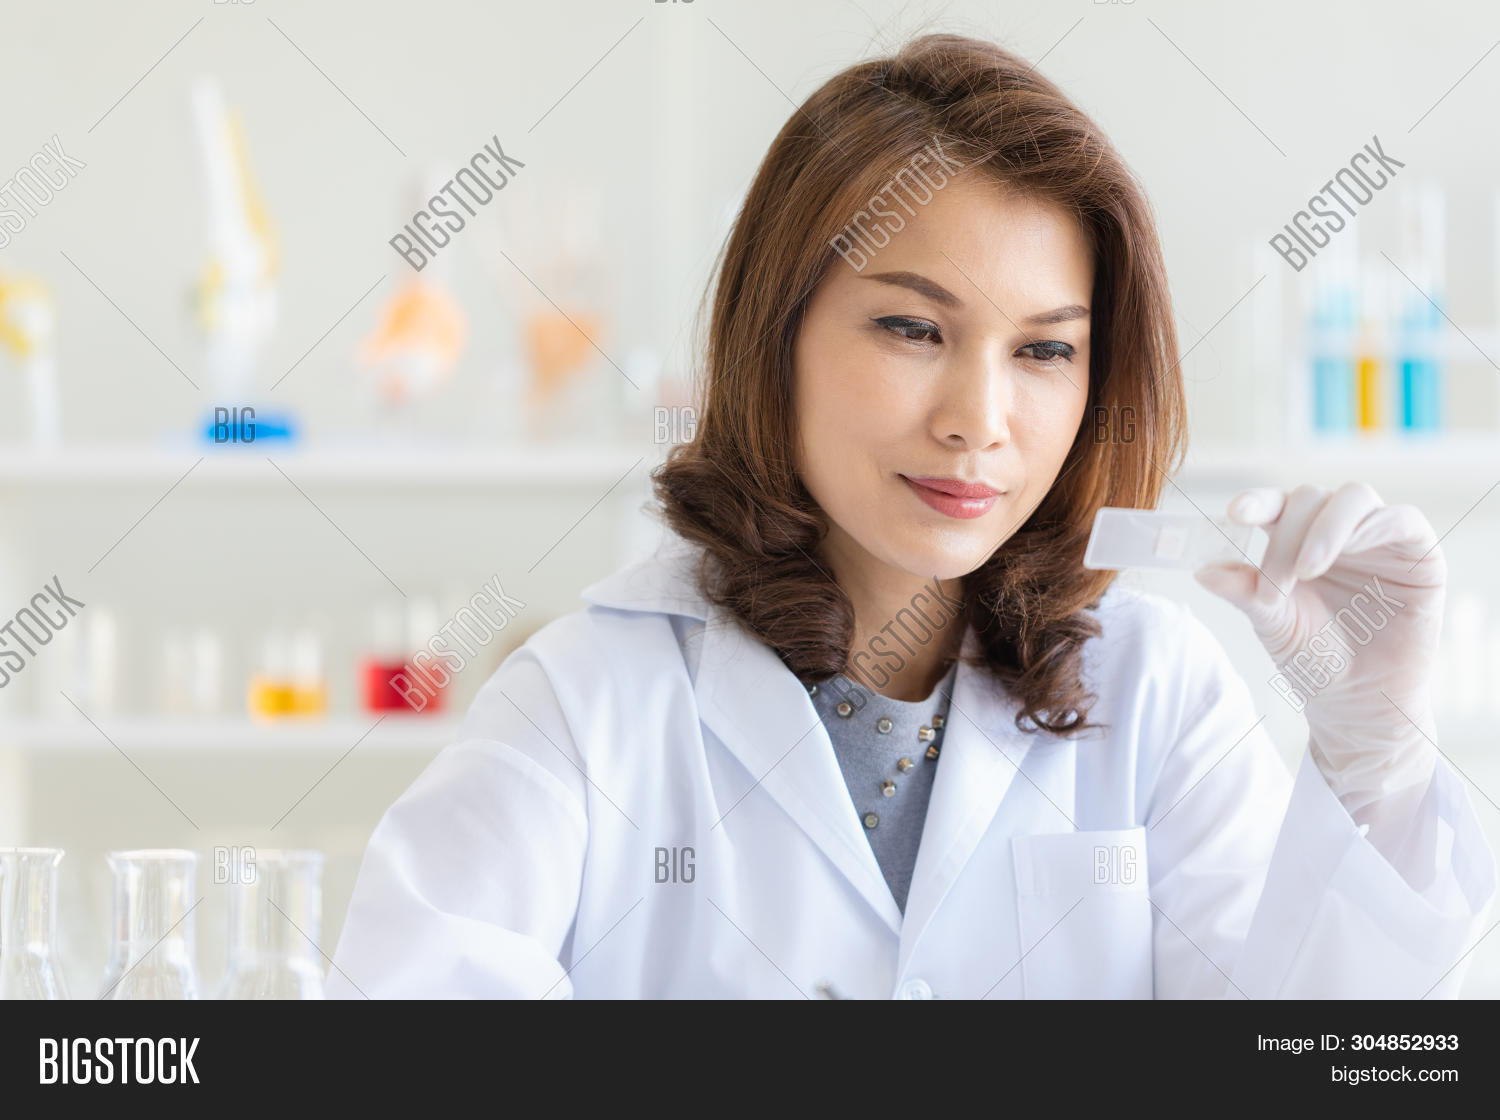 analysis,asian,background,beaker,beautiful,beauty,biology,biotechnology,chemical,chemistry,clinic,close,coat,discovery,equipment,experiment,female,hand,hold,lab,laboratory,leader,looking,medical,multicultural,occupation,pad,pharmacy,portrait,poses,posing,research,result,sample,science,scientific,scientist,smiling,something,standing,study,test,tool,tube,up,white,woman,work,young